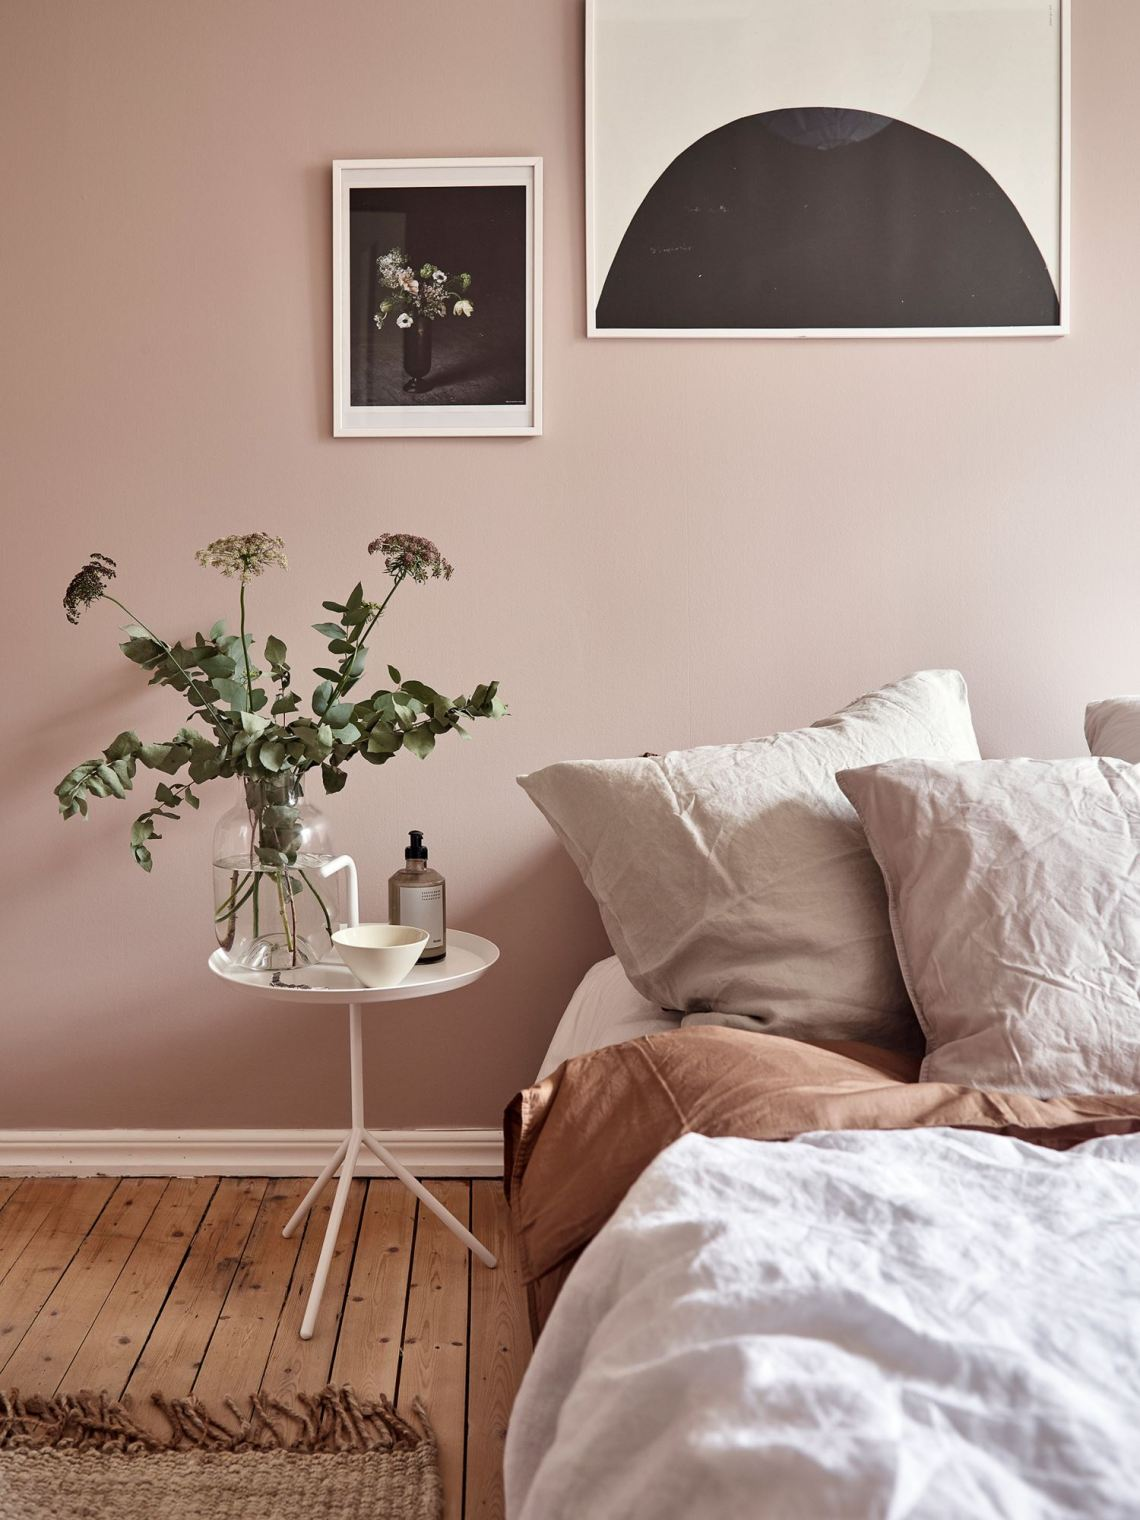 Dusty pink bedroom walls